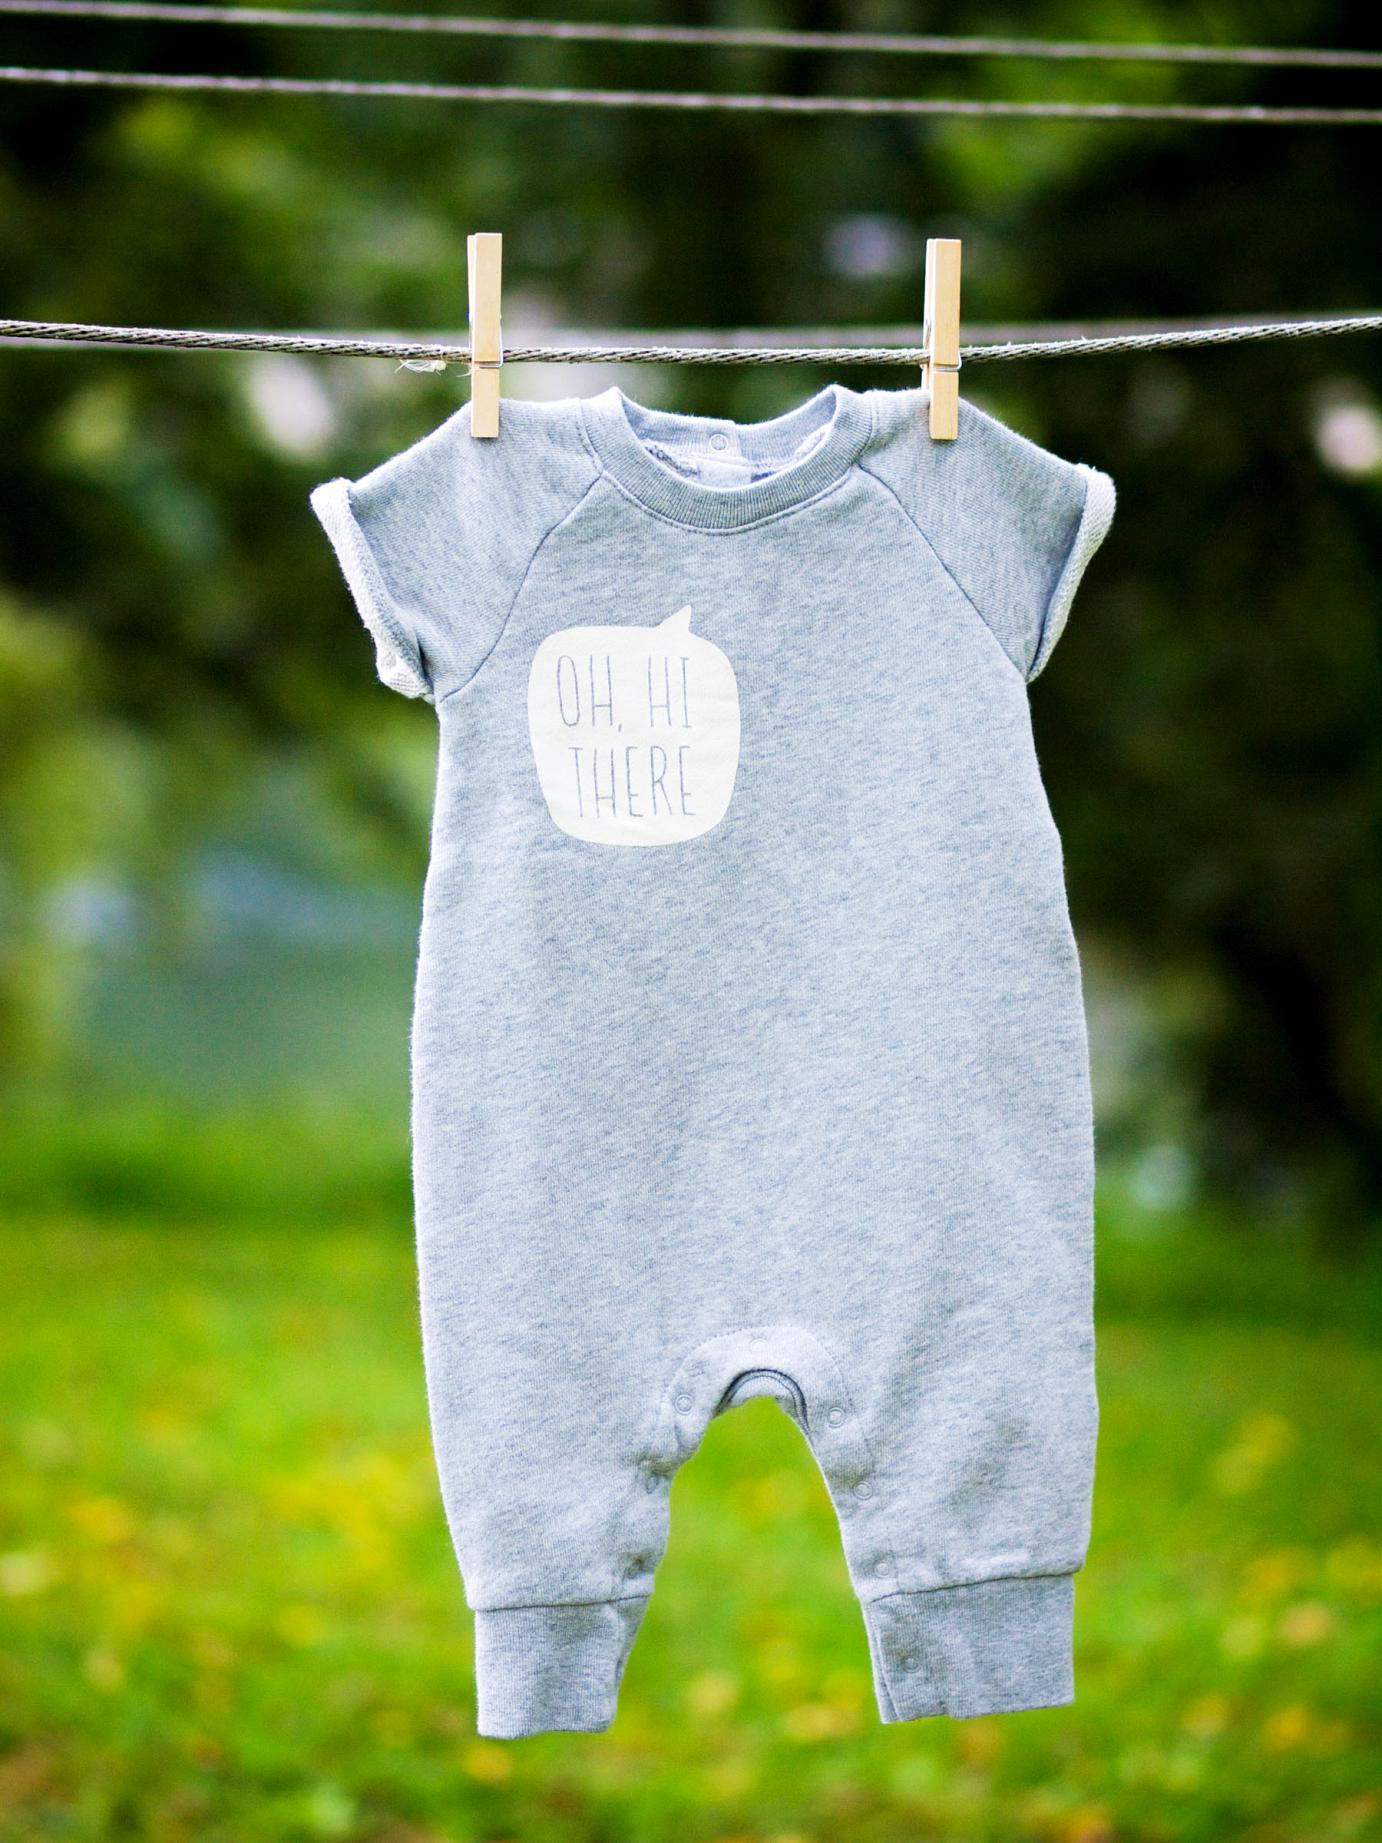 bittersweet colours, baby news, baby announcement, Gap Kids, baby clothing, march 2015, new chapter, love